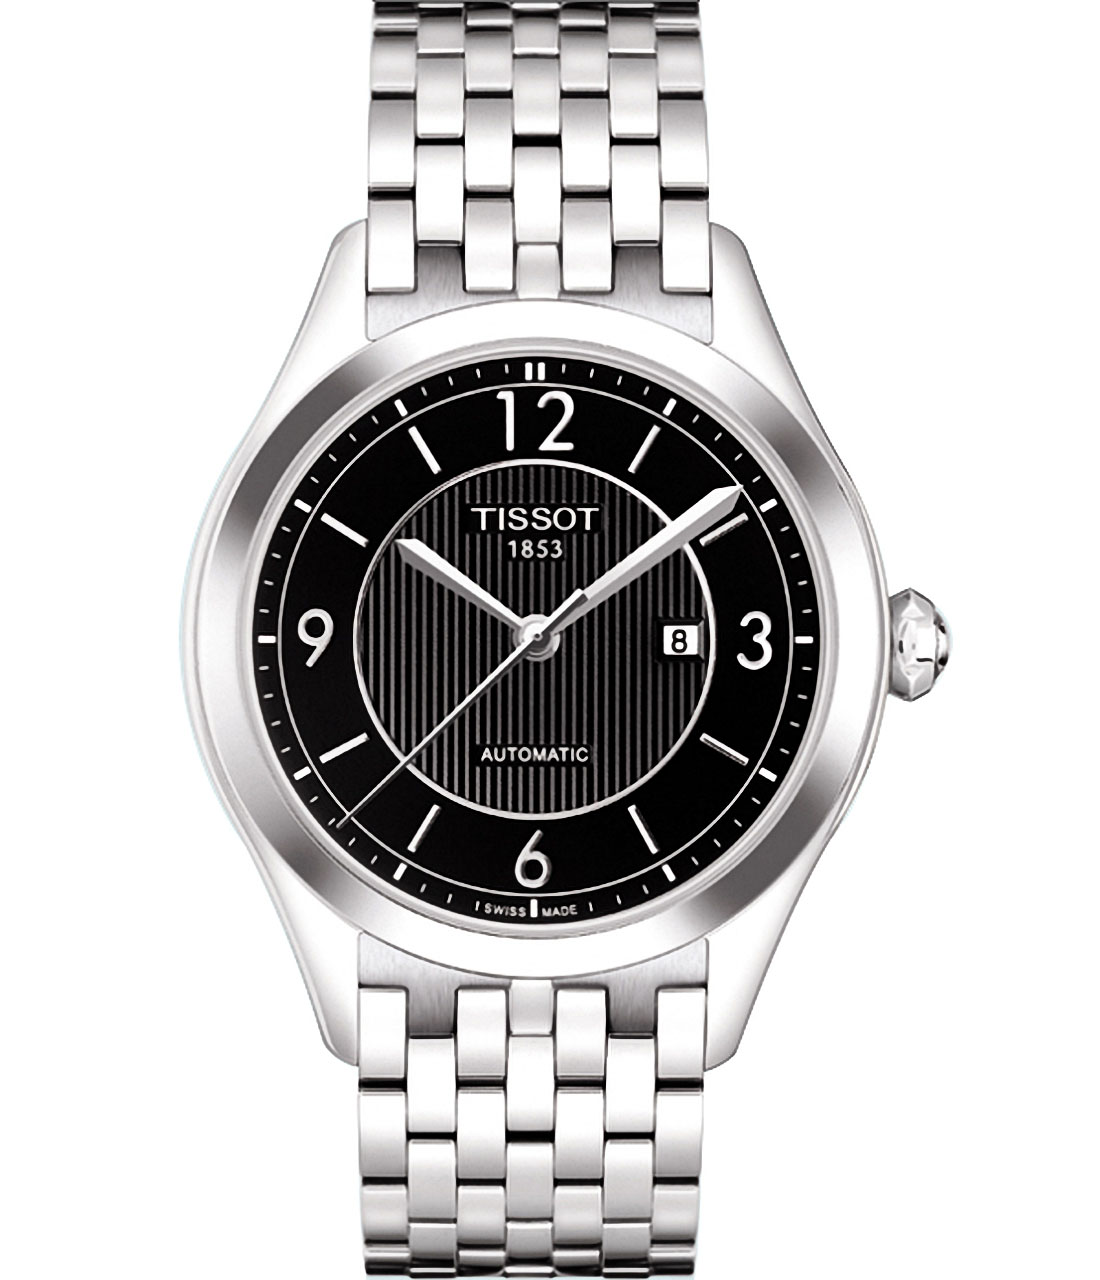 Tissot Offers Automatic 80-Hour Movements at Affordable Prices